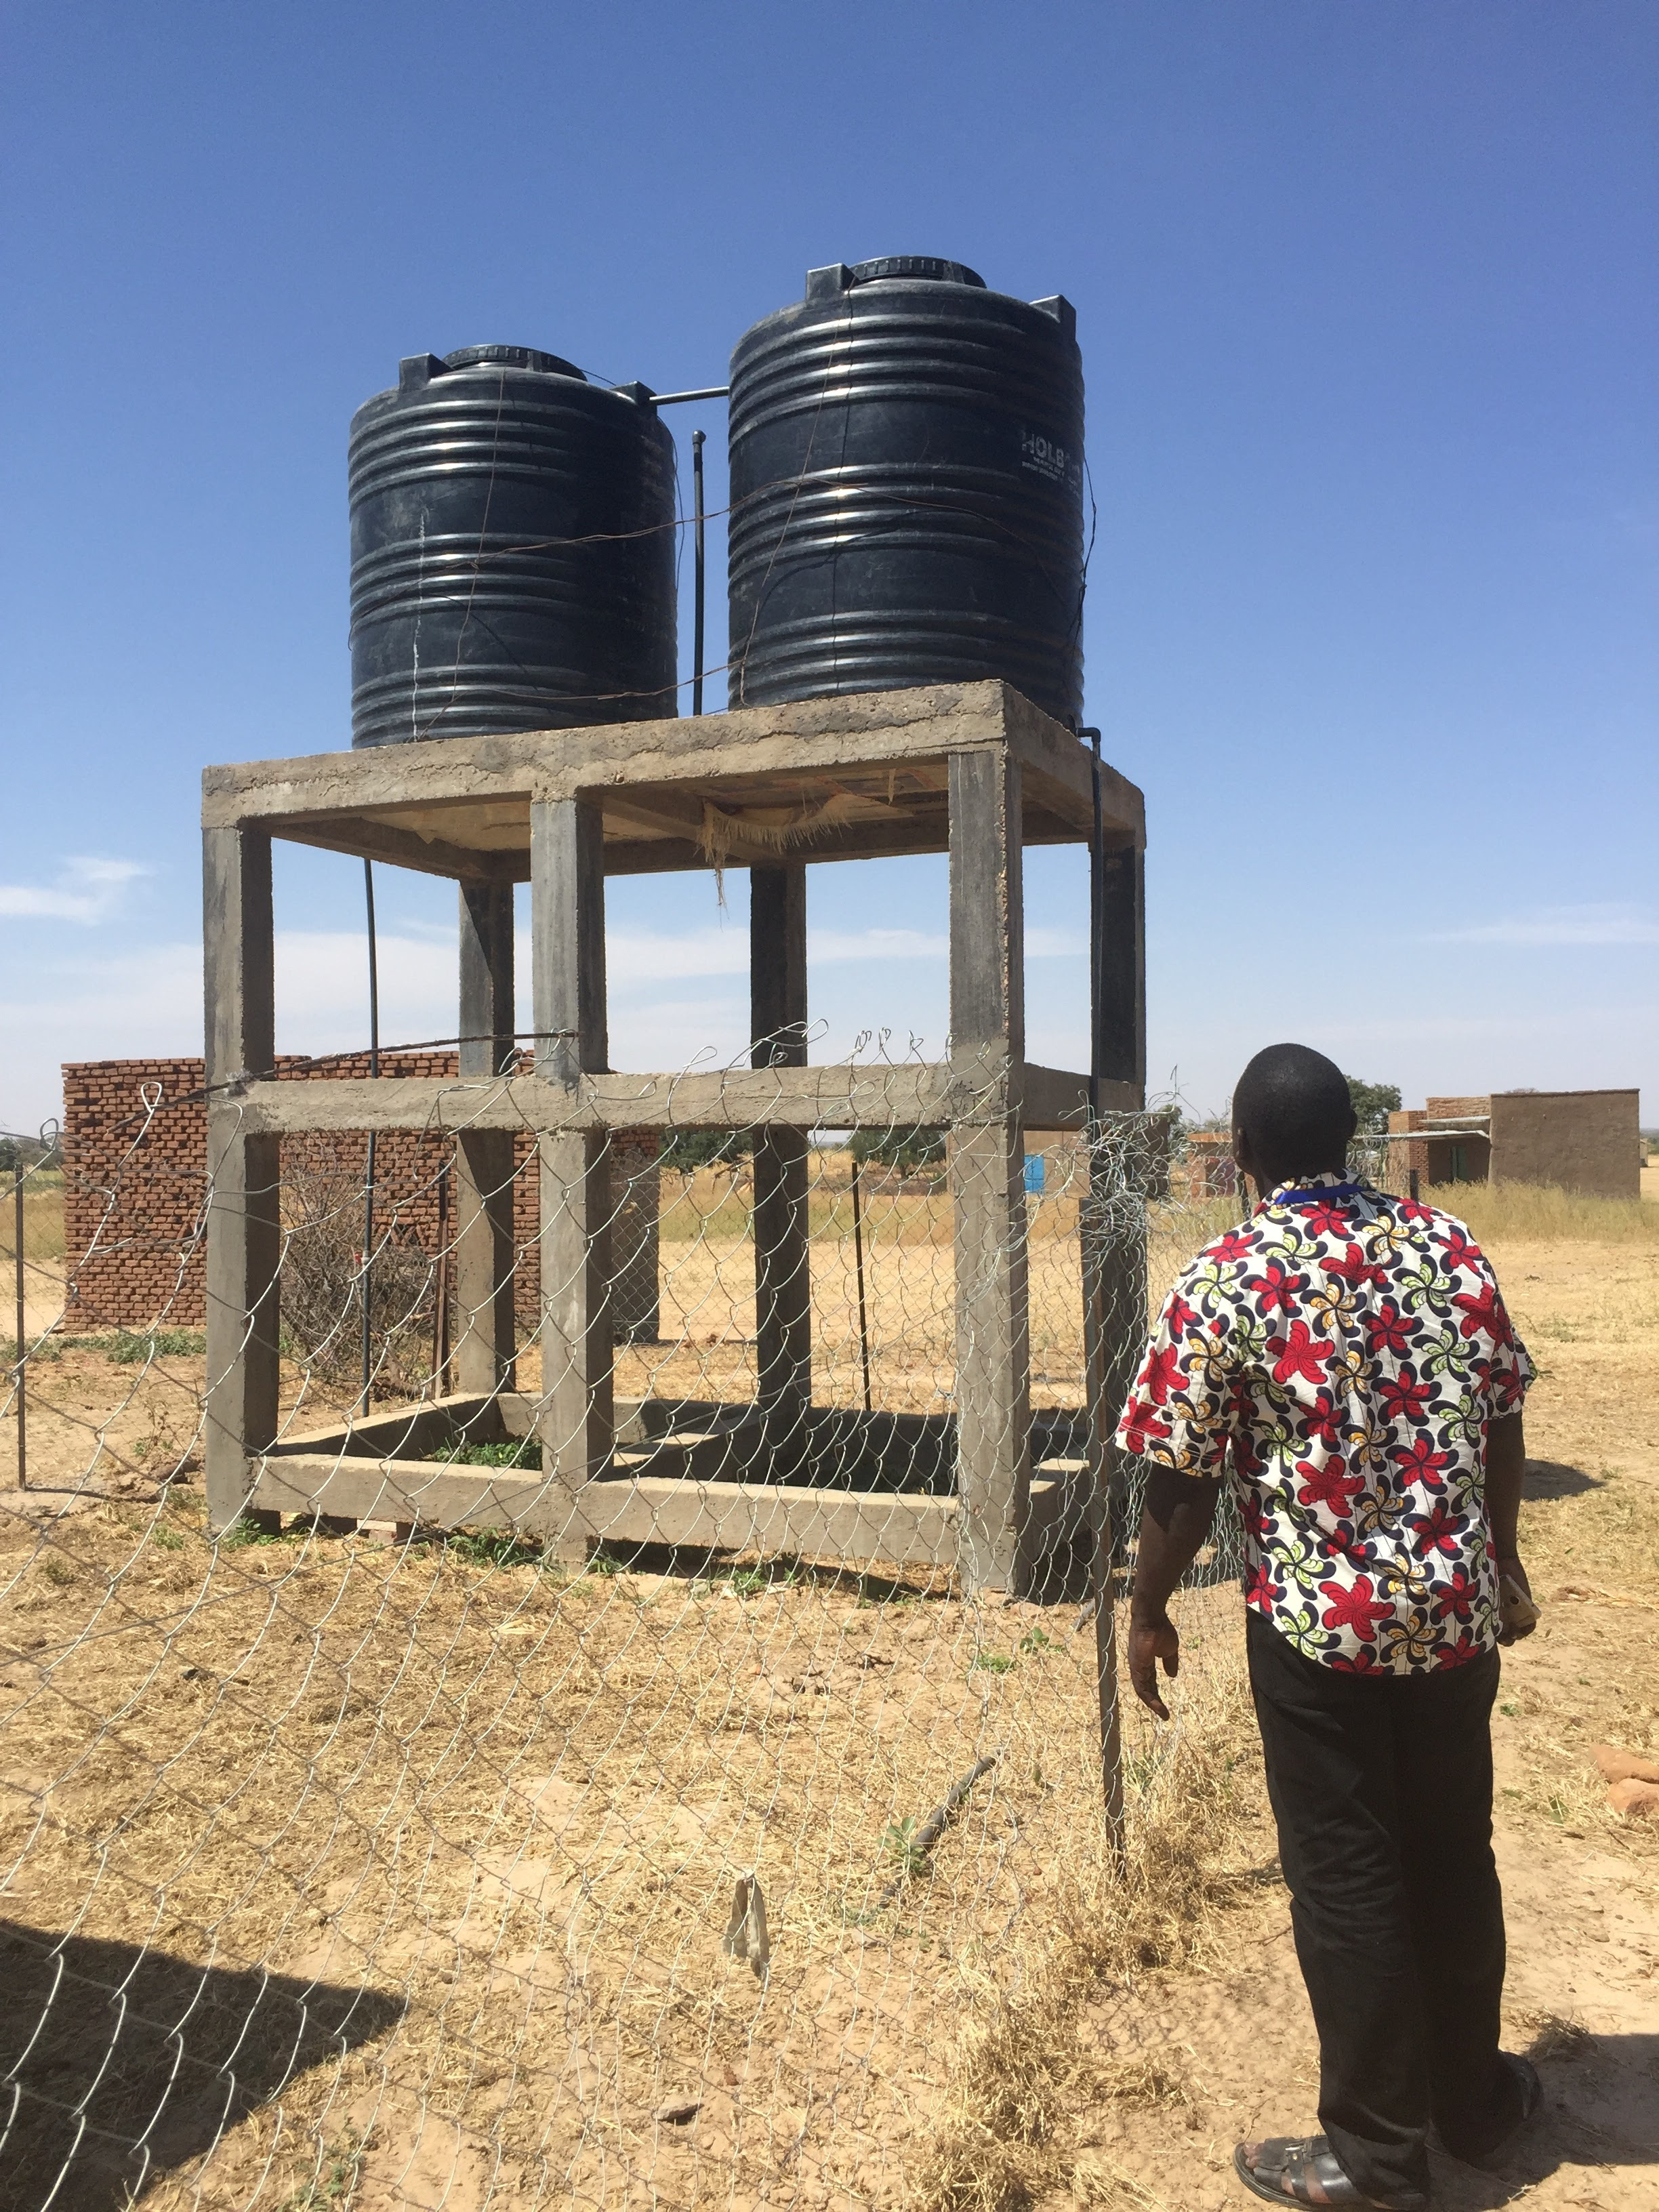 Water holding tanks in Maramara allow for crop irrigation during the dry season.